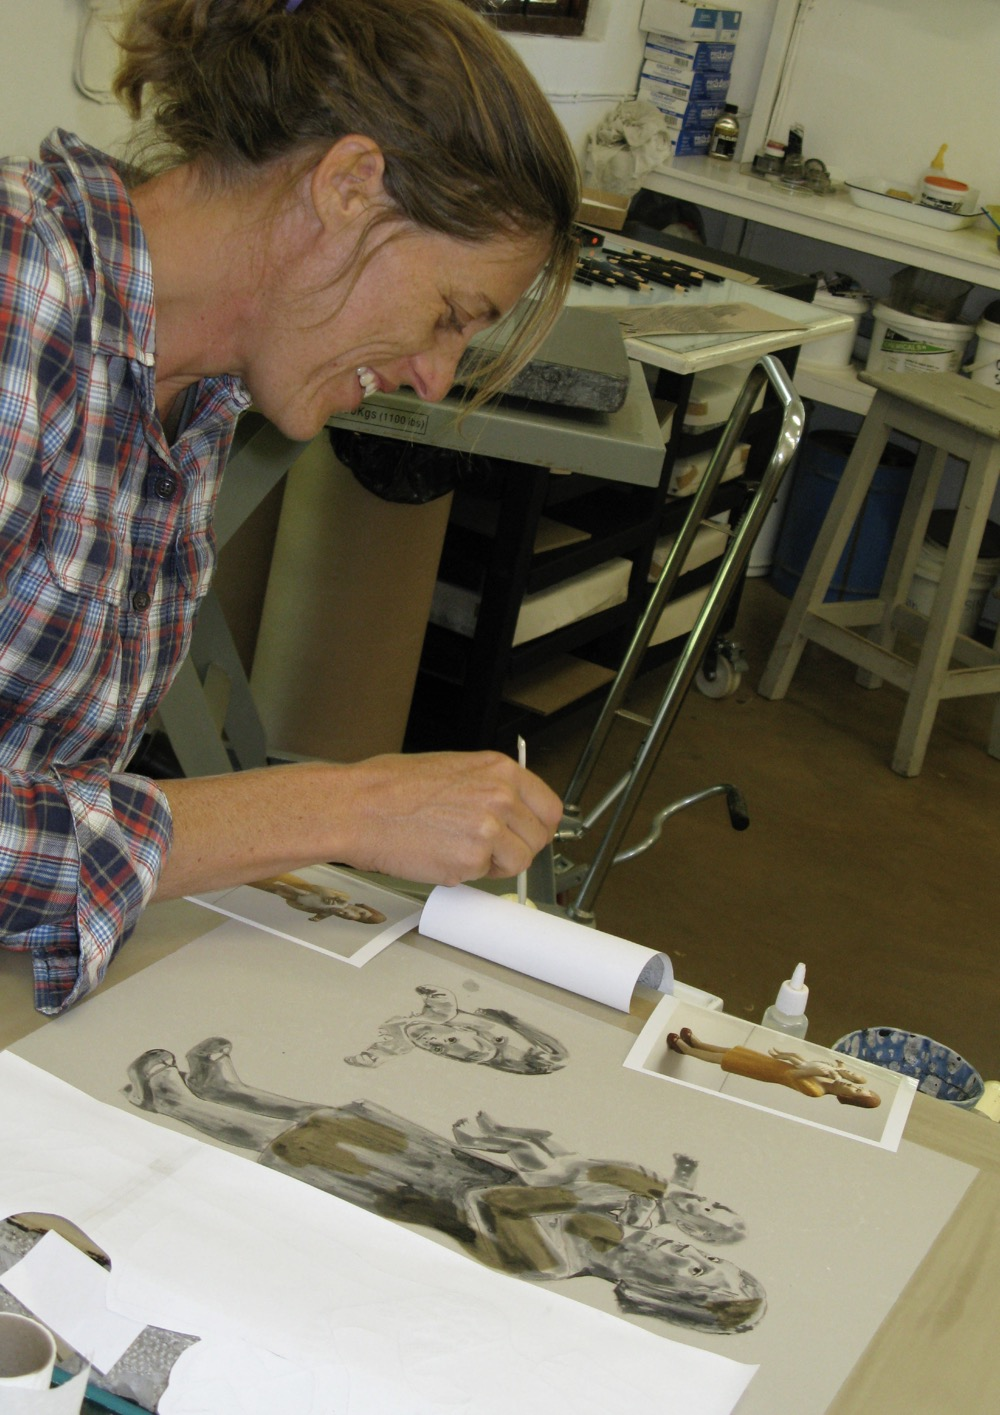 Claudette Schreuders painting onto a lithographic stone for her print titled